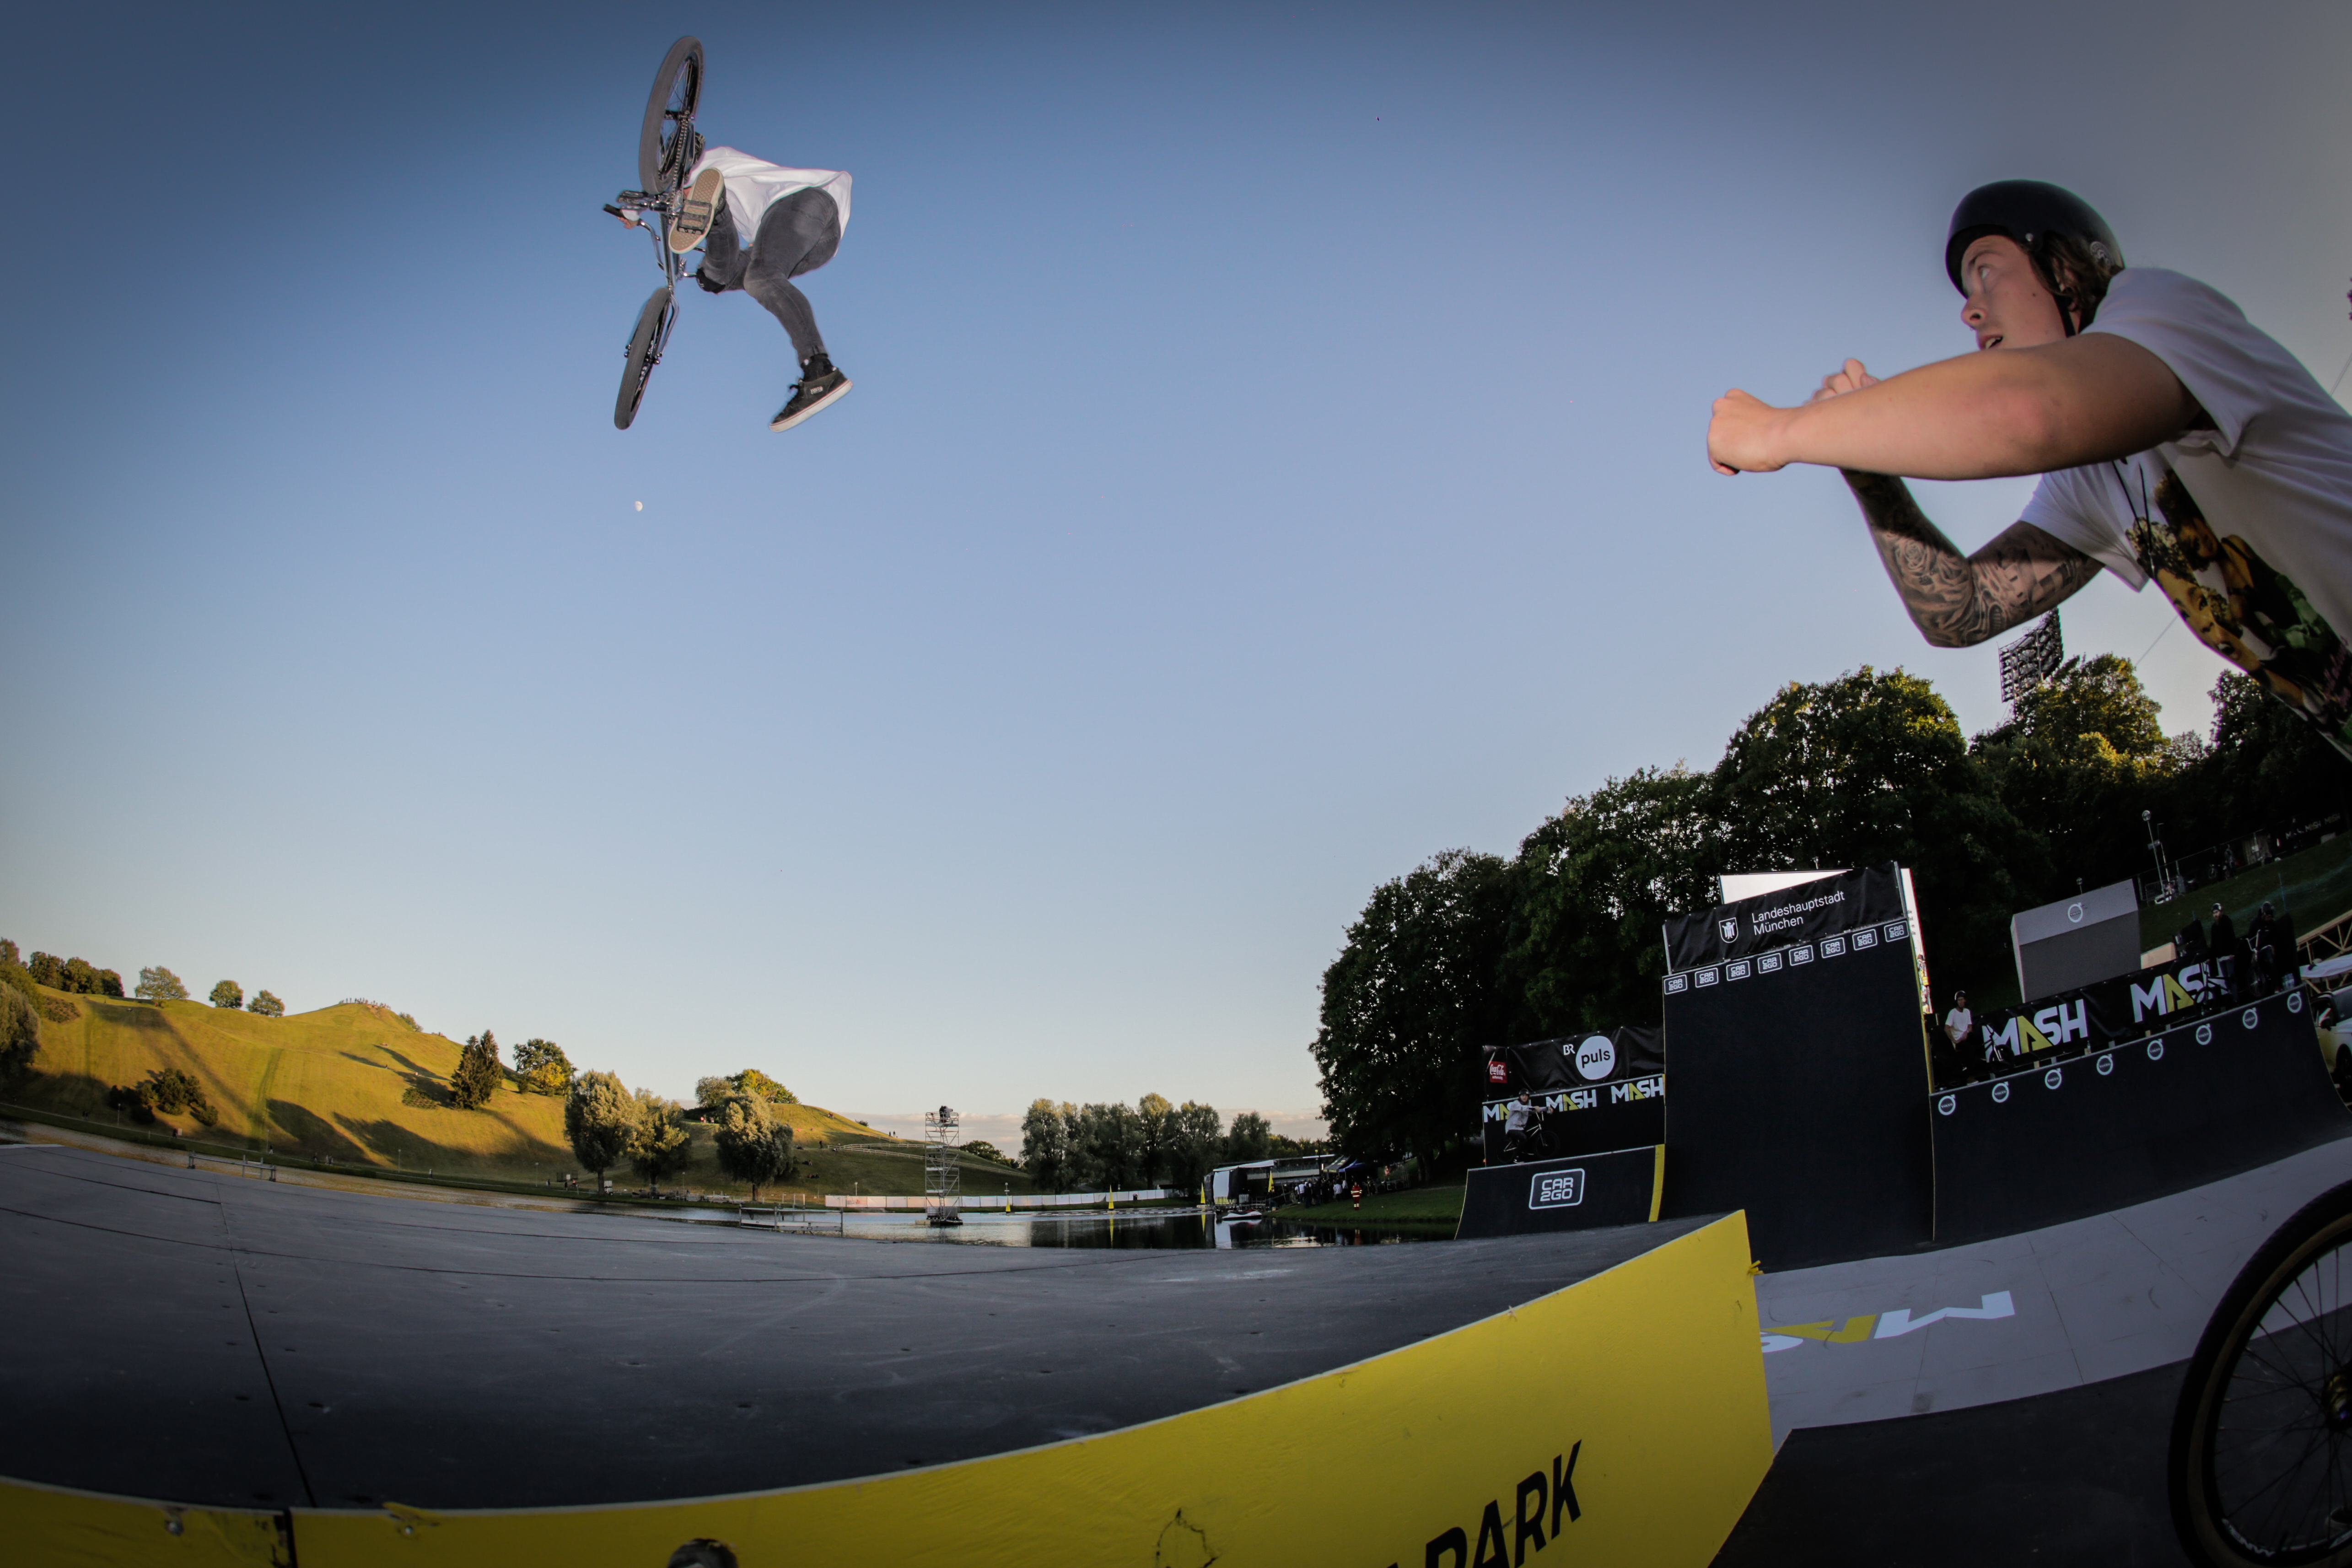 Moritz Löwentraut is flyer over the munich mash park at the ride further tour